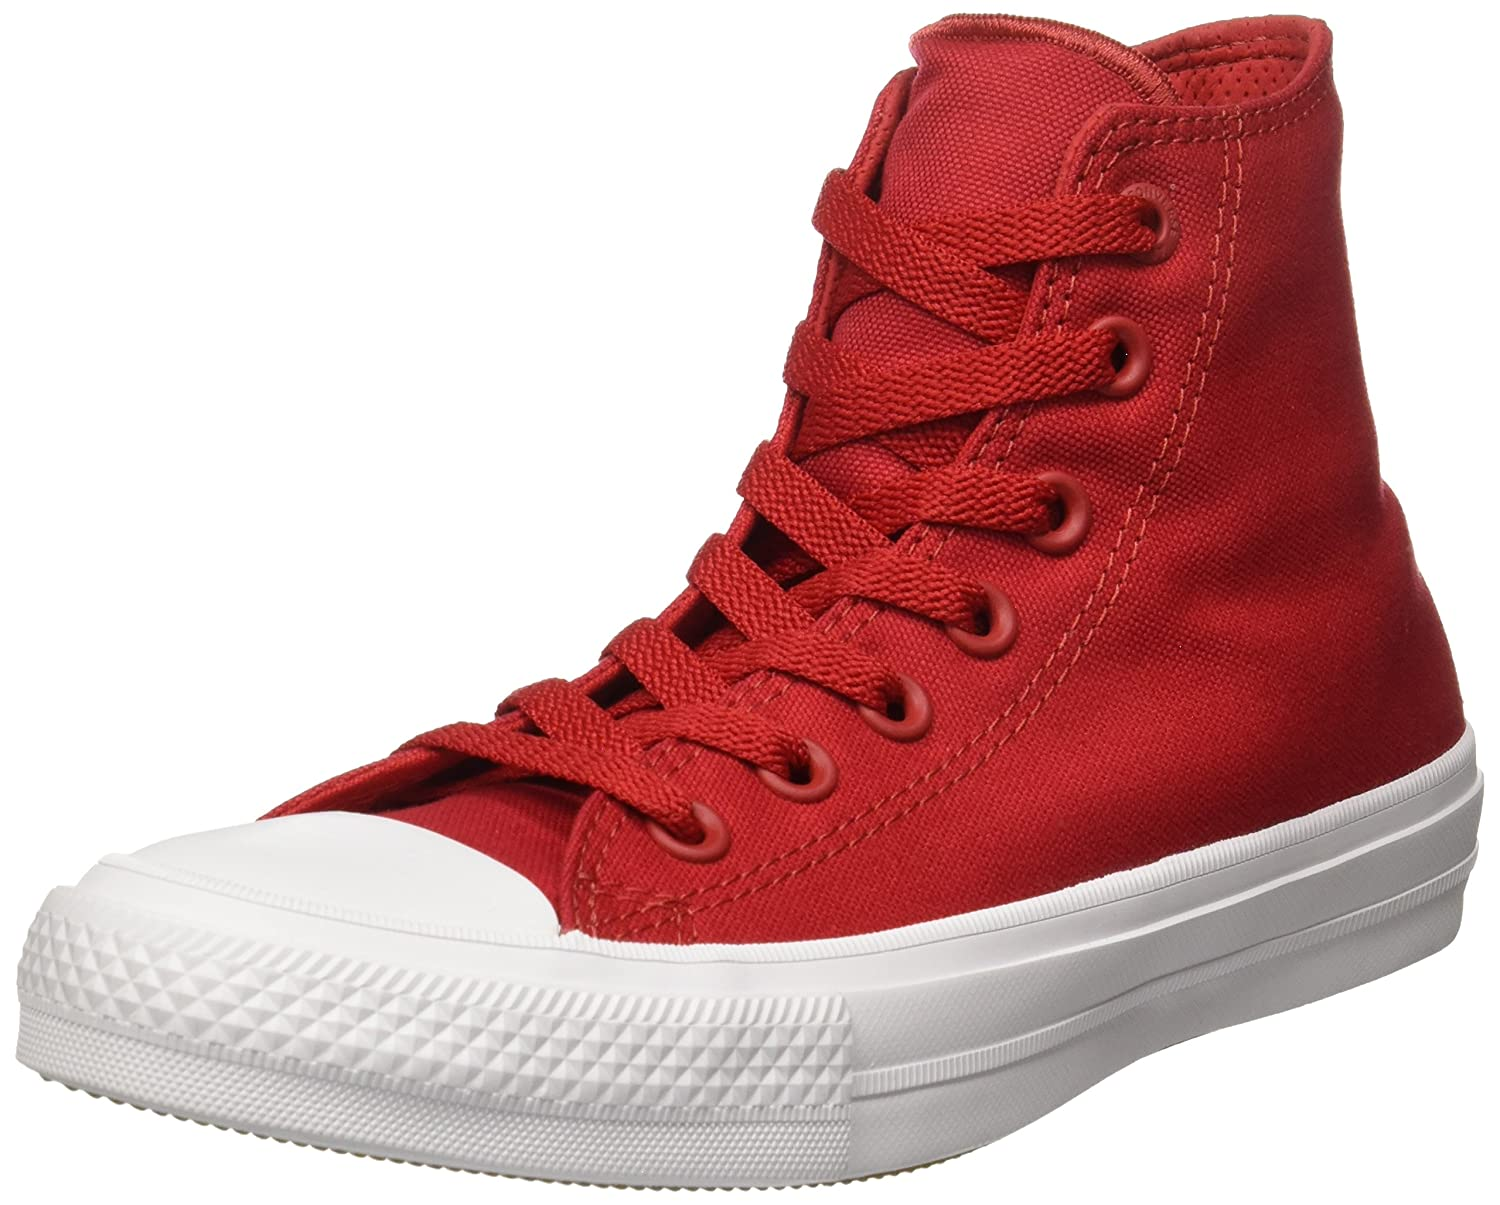 Converse Chuck Taylor All Star II High B010S573CO 7 B(M) US Women / 5 D(M) US Men|Salsa Red/White/Navy